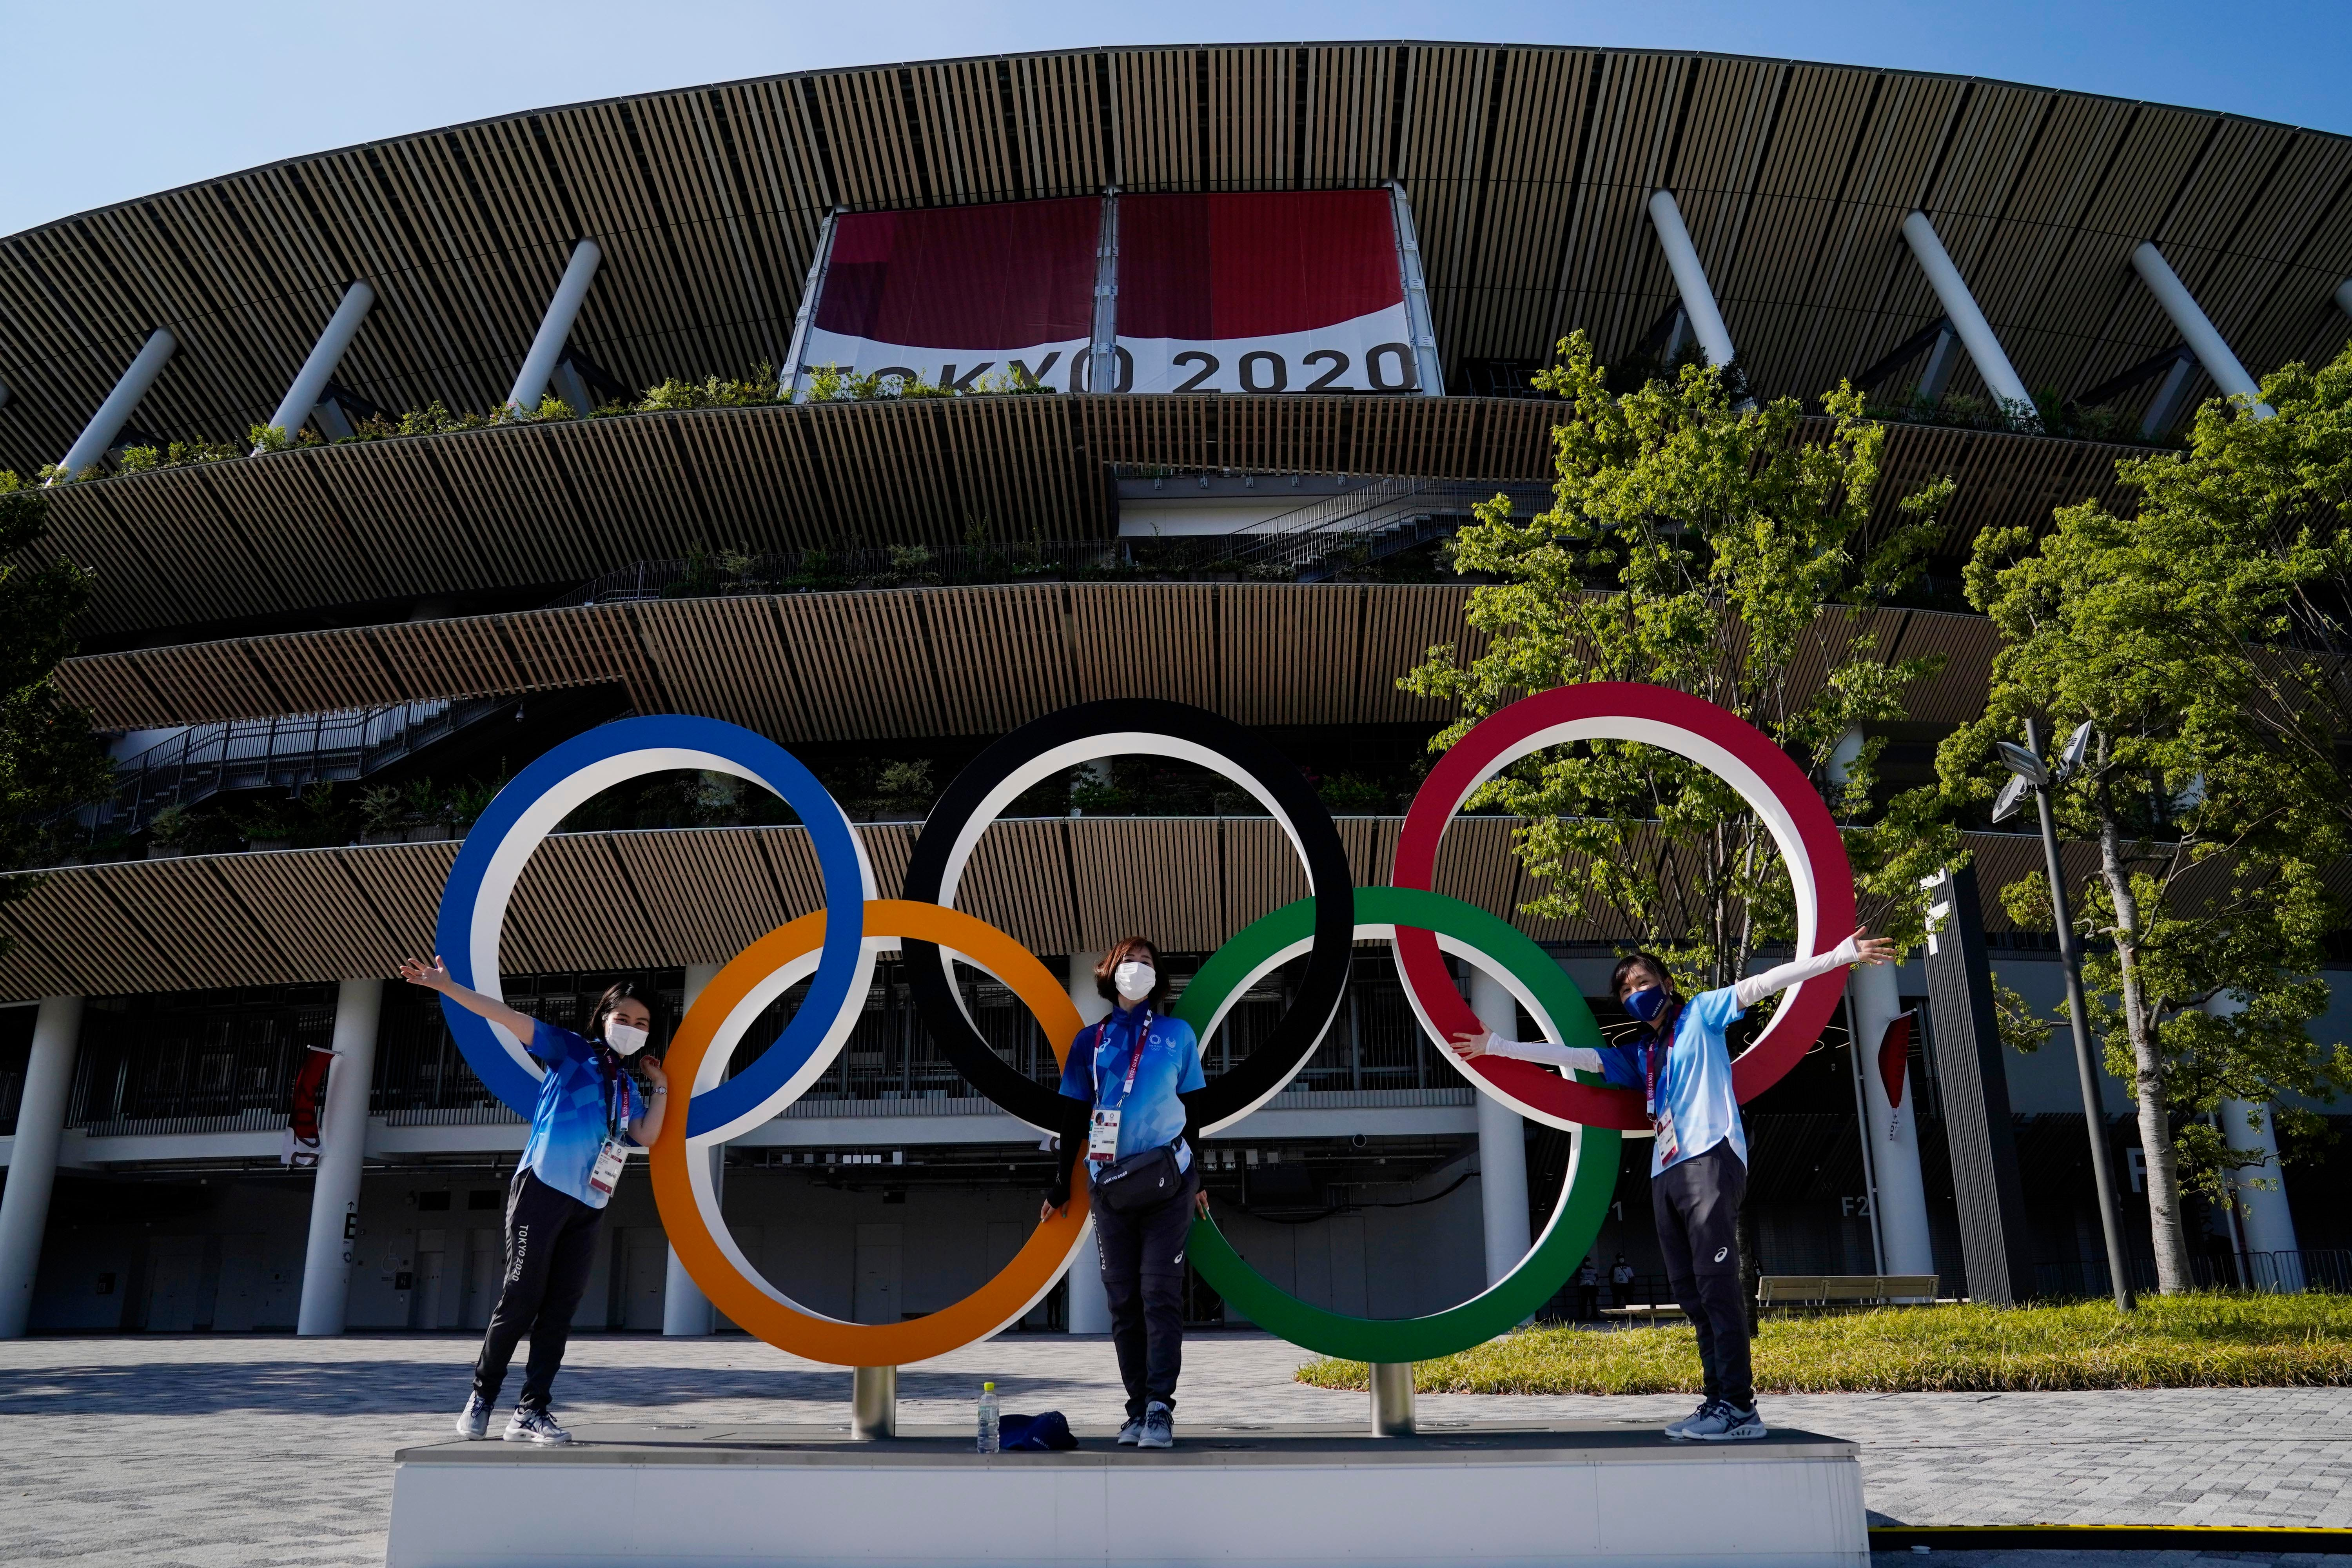 usatoday.com - , USA TODAY - Live from the Olympics opening ceremony: Latest news, updates from the scene in Tokyo